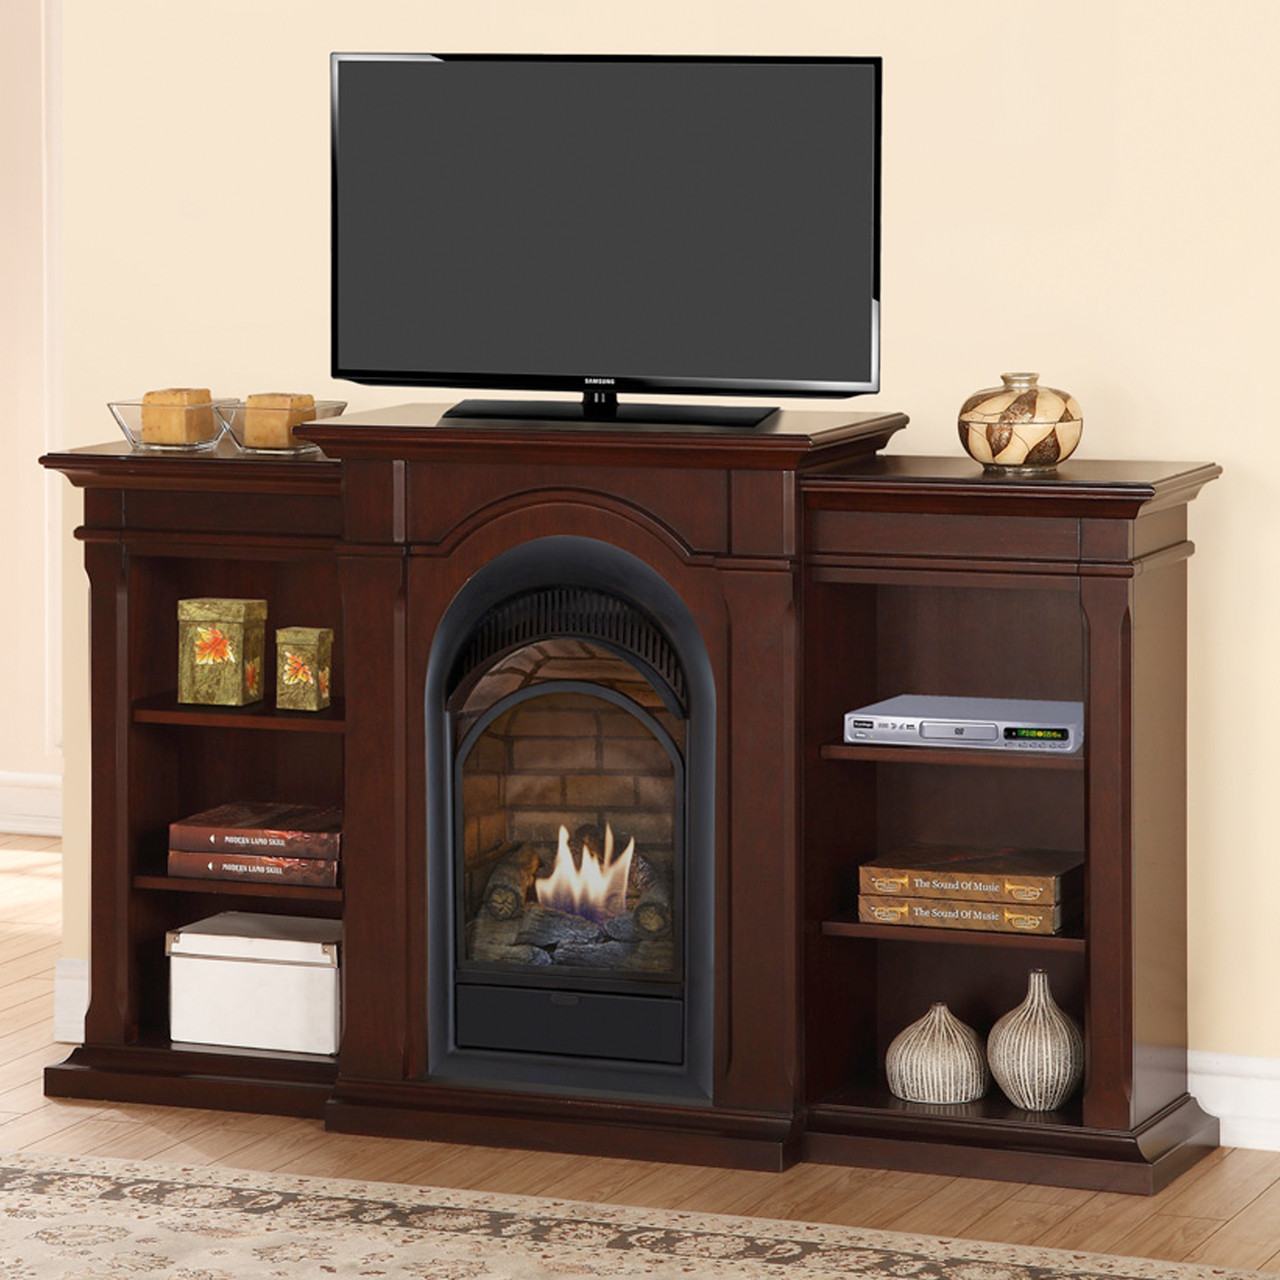 Duluth Forge Dual Fuel Ventless Fireplace With Bookshelves 15 000